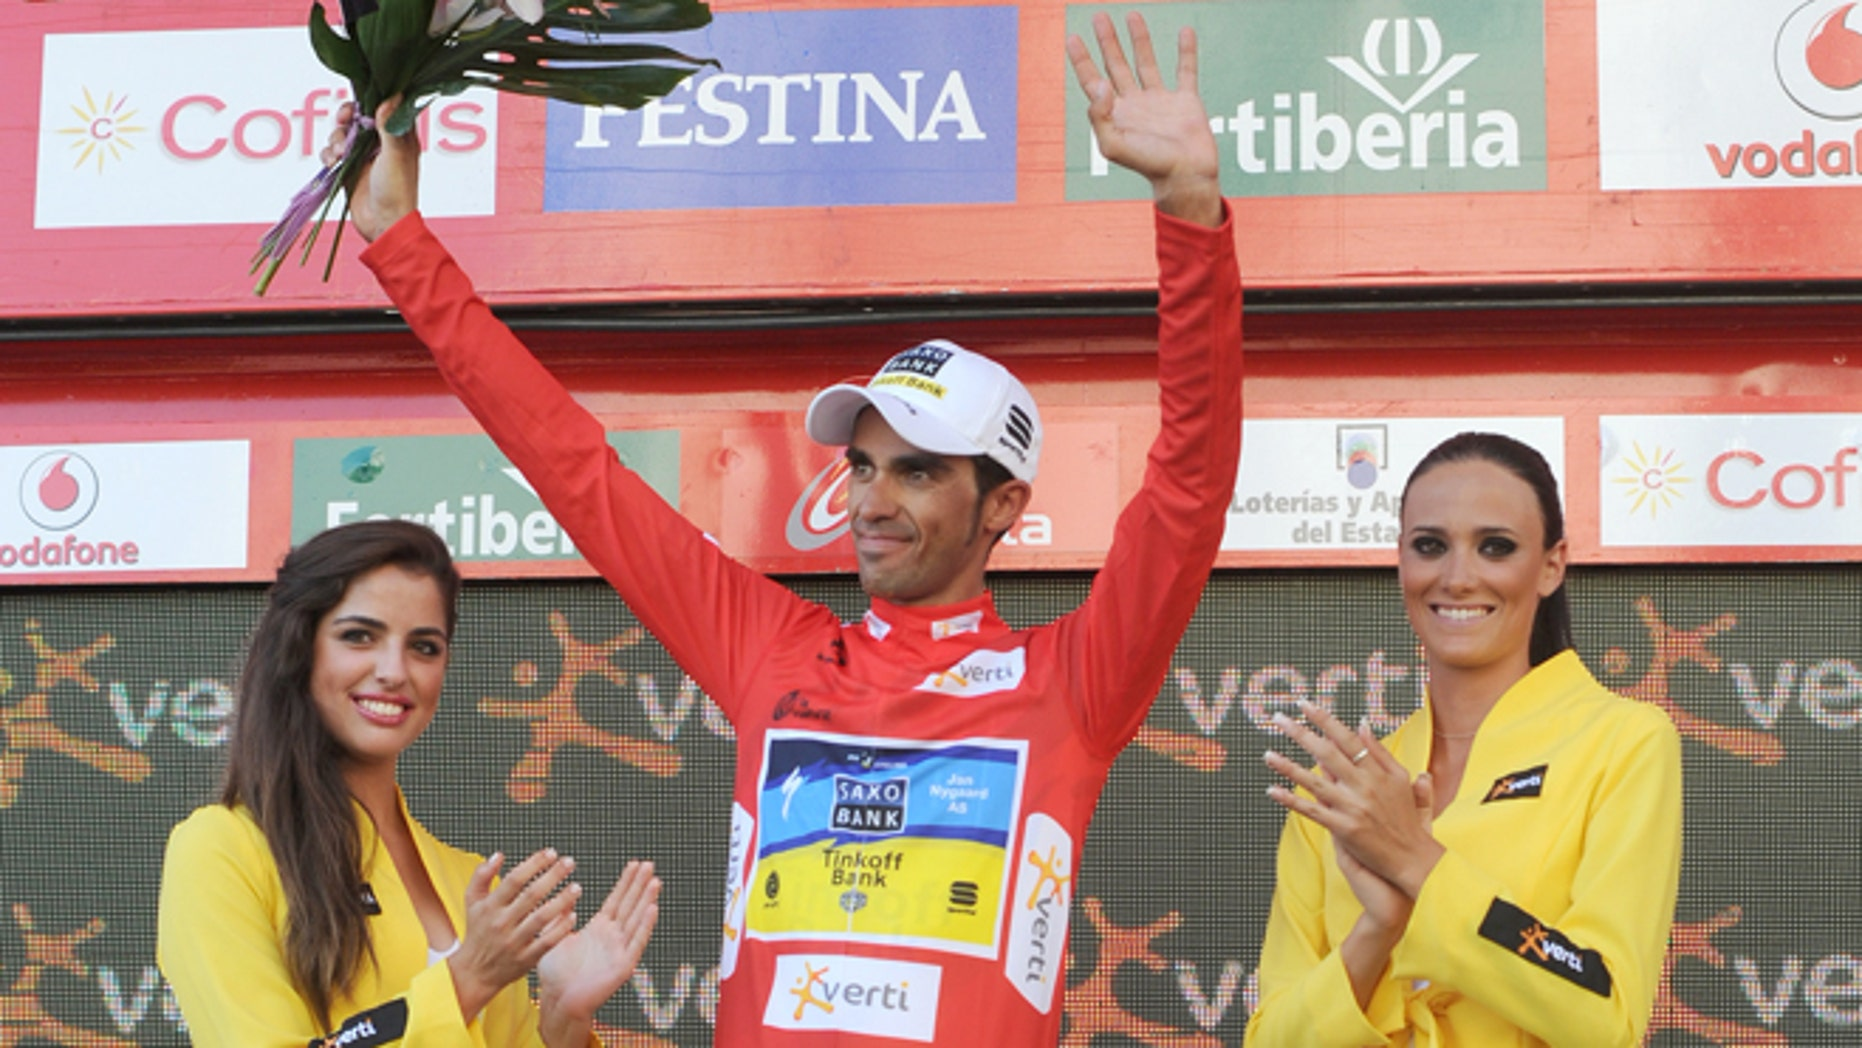 Spanish cyclist Alberto Contador from the Saxo Bank Team celebrates on the podium with the overall red leader jersey at the end  of the 18th stage of the Spanish Vuelta cycling race from Aguilar de Campo to Valladolid, Spain, Thursday, Sept. 6, 2012. The 21-stage, three week race ends in Madrid on Sept. 9. (AP Photo/Israel L.Murillo)